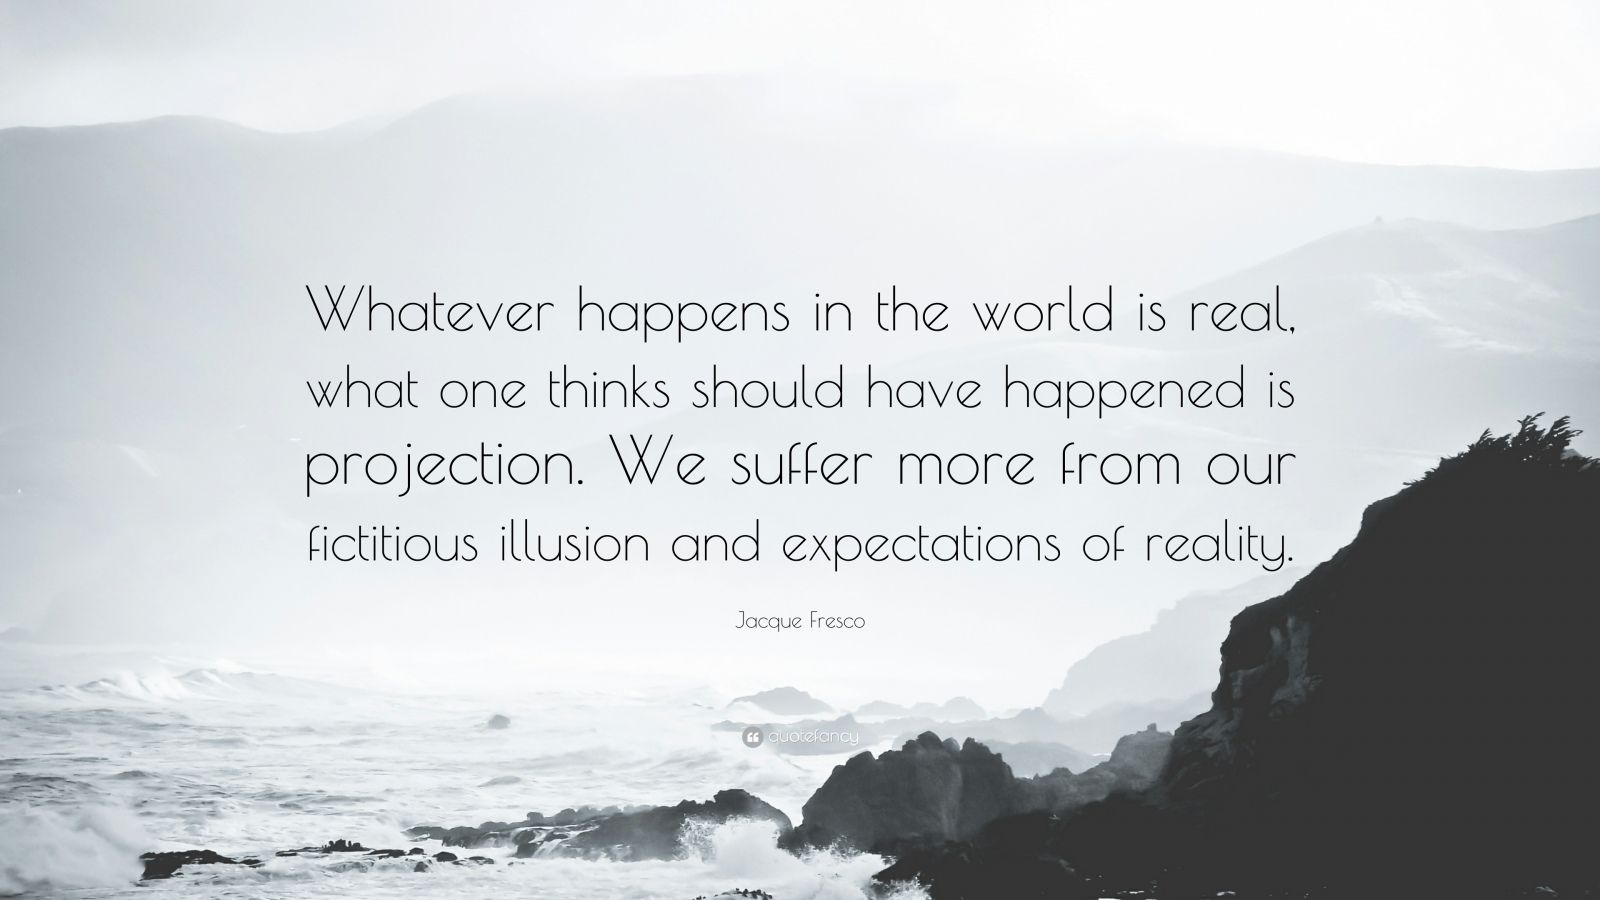 """Jacque Fresco Quote: """"Whatever happens in the world is real, what one thinks should have happened is projection. We suffer more from our fictitious illusion and expectations of reality."""""""